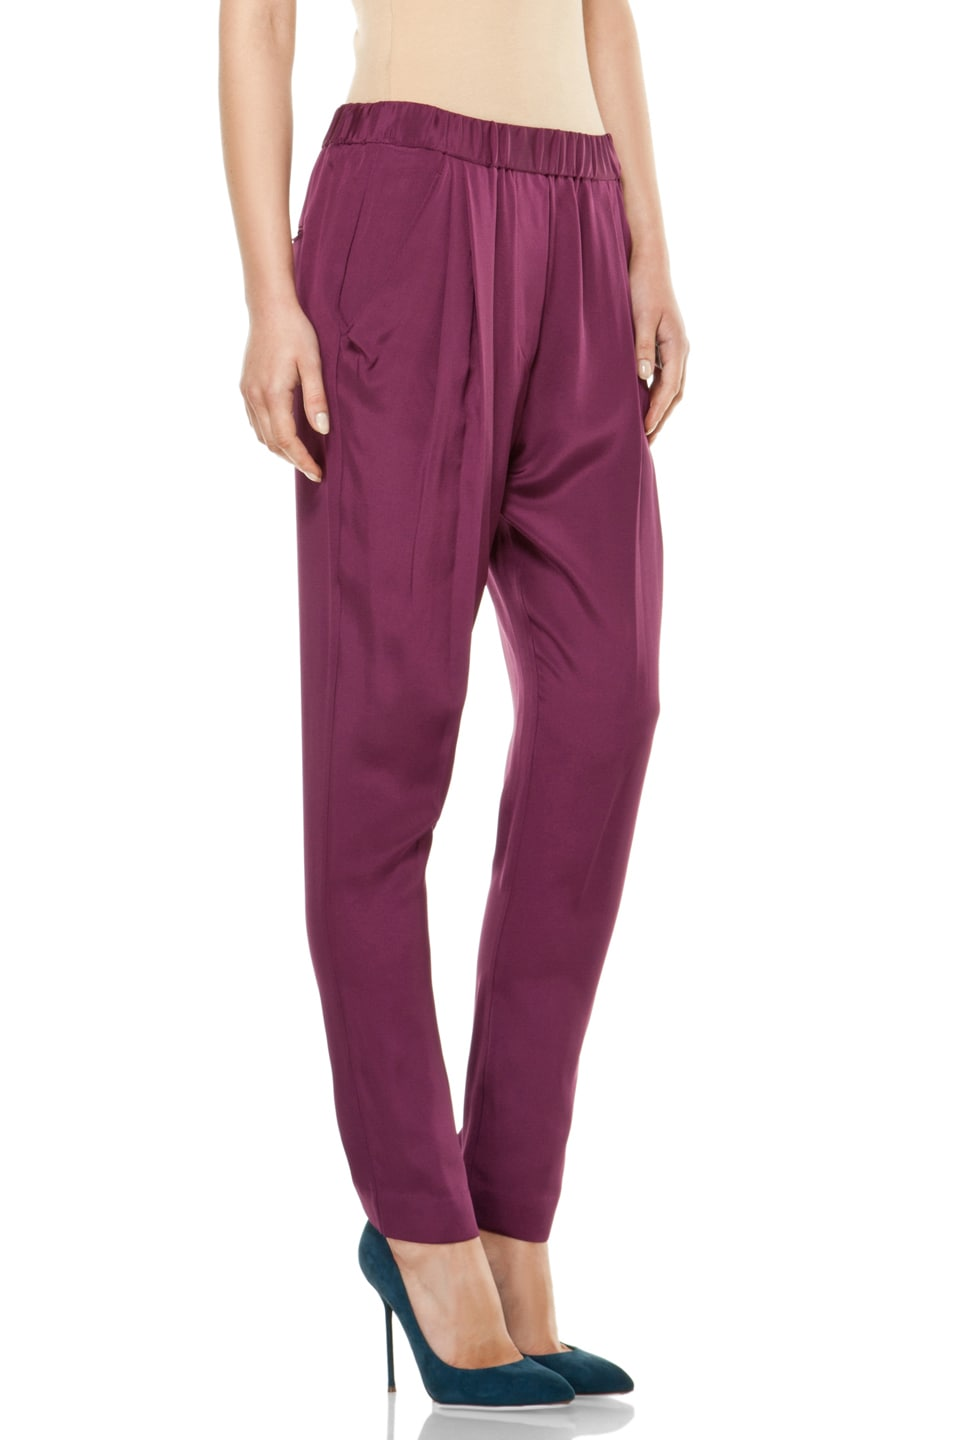 Image 3 of 3.1 phillip lim Draped Pocket Trouser in Berry